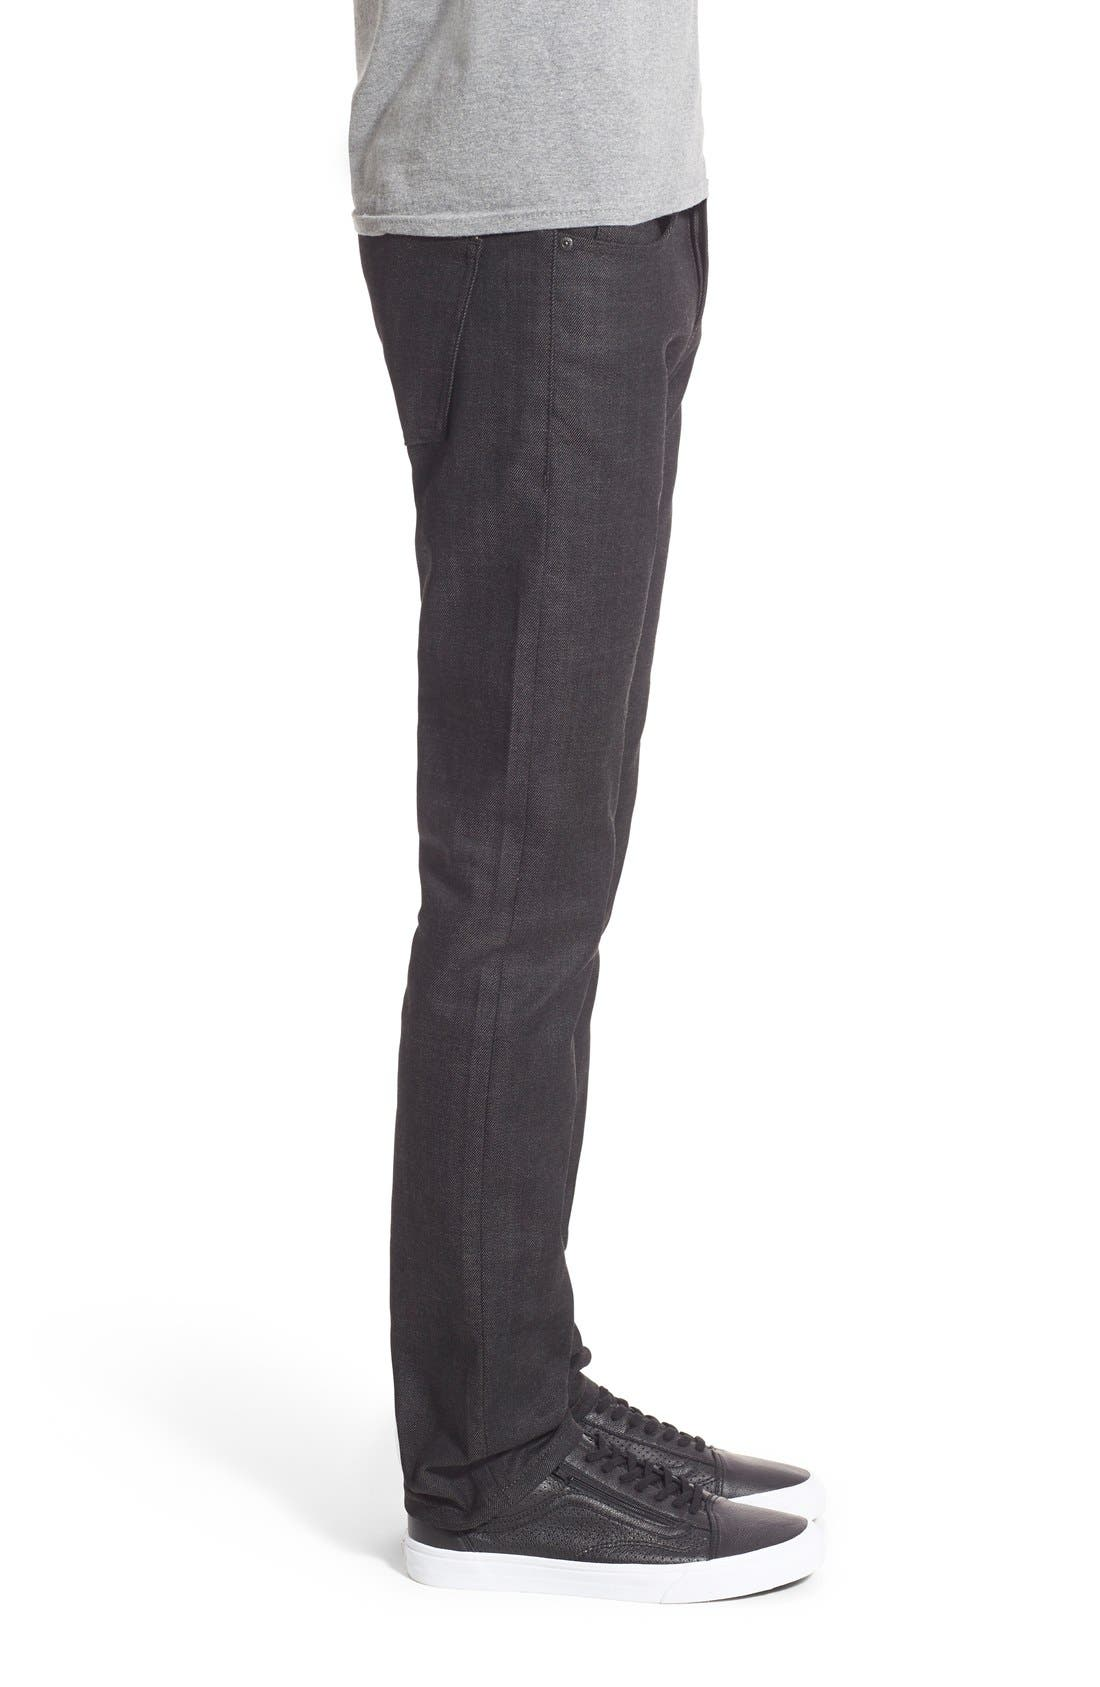 Naked & Famous Super Skinny Guy Skinny Fit Stretch Jeans,                             Alternate thumbnail 4, color,                             BLACK X GREY